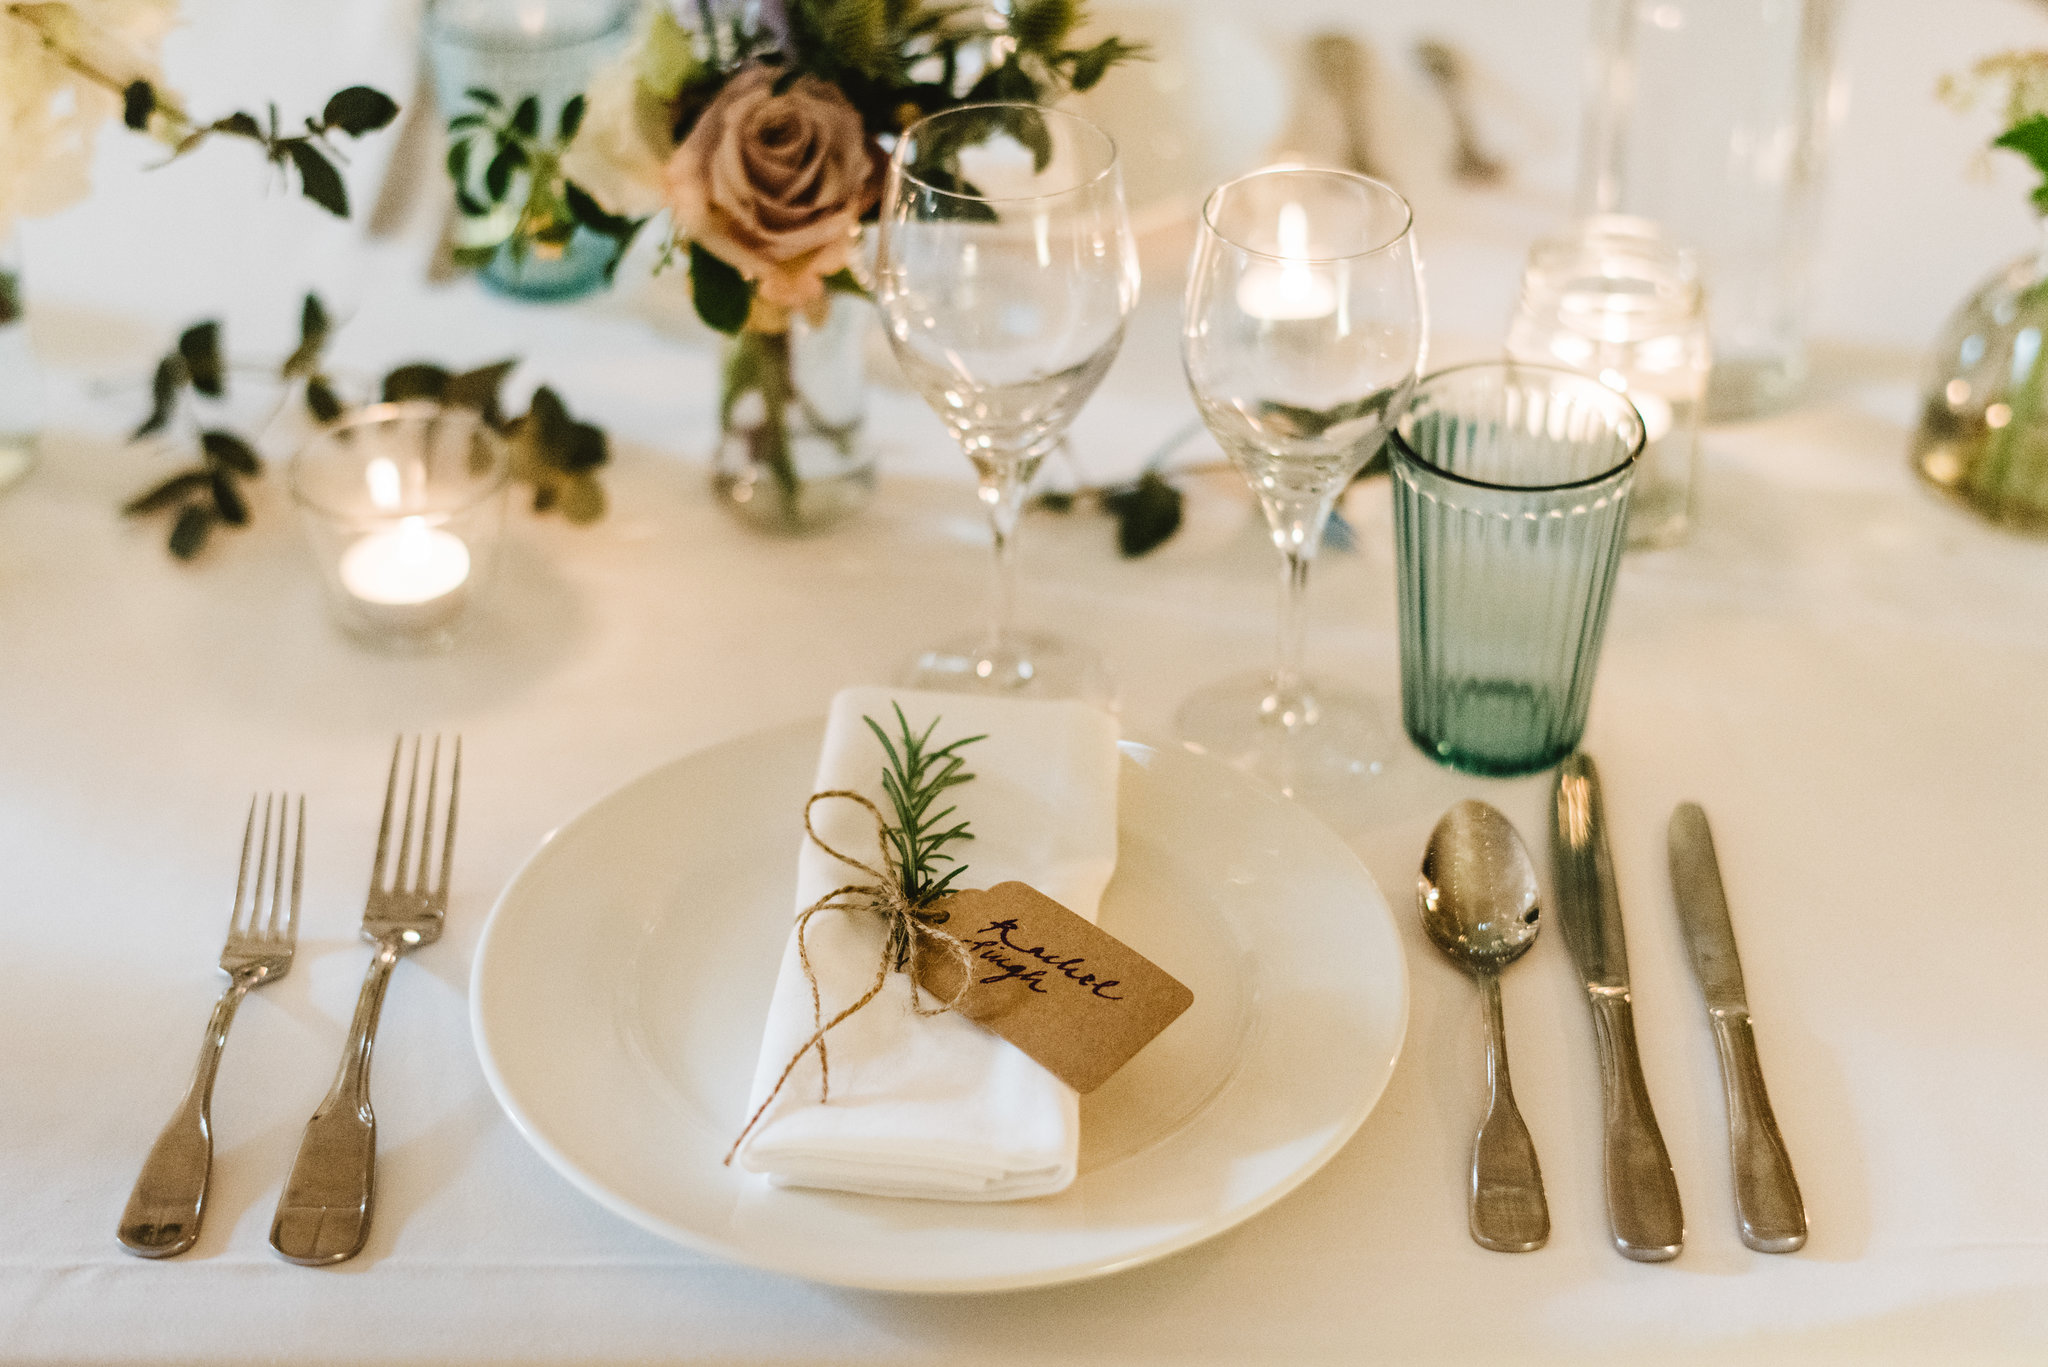 French wedding styling